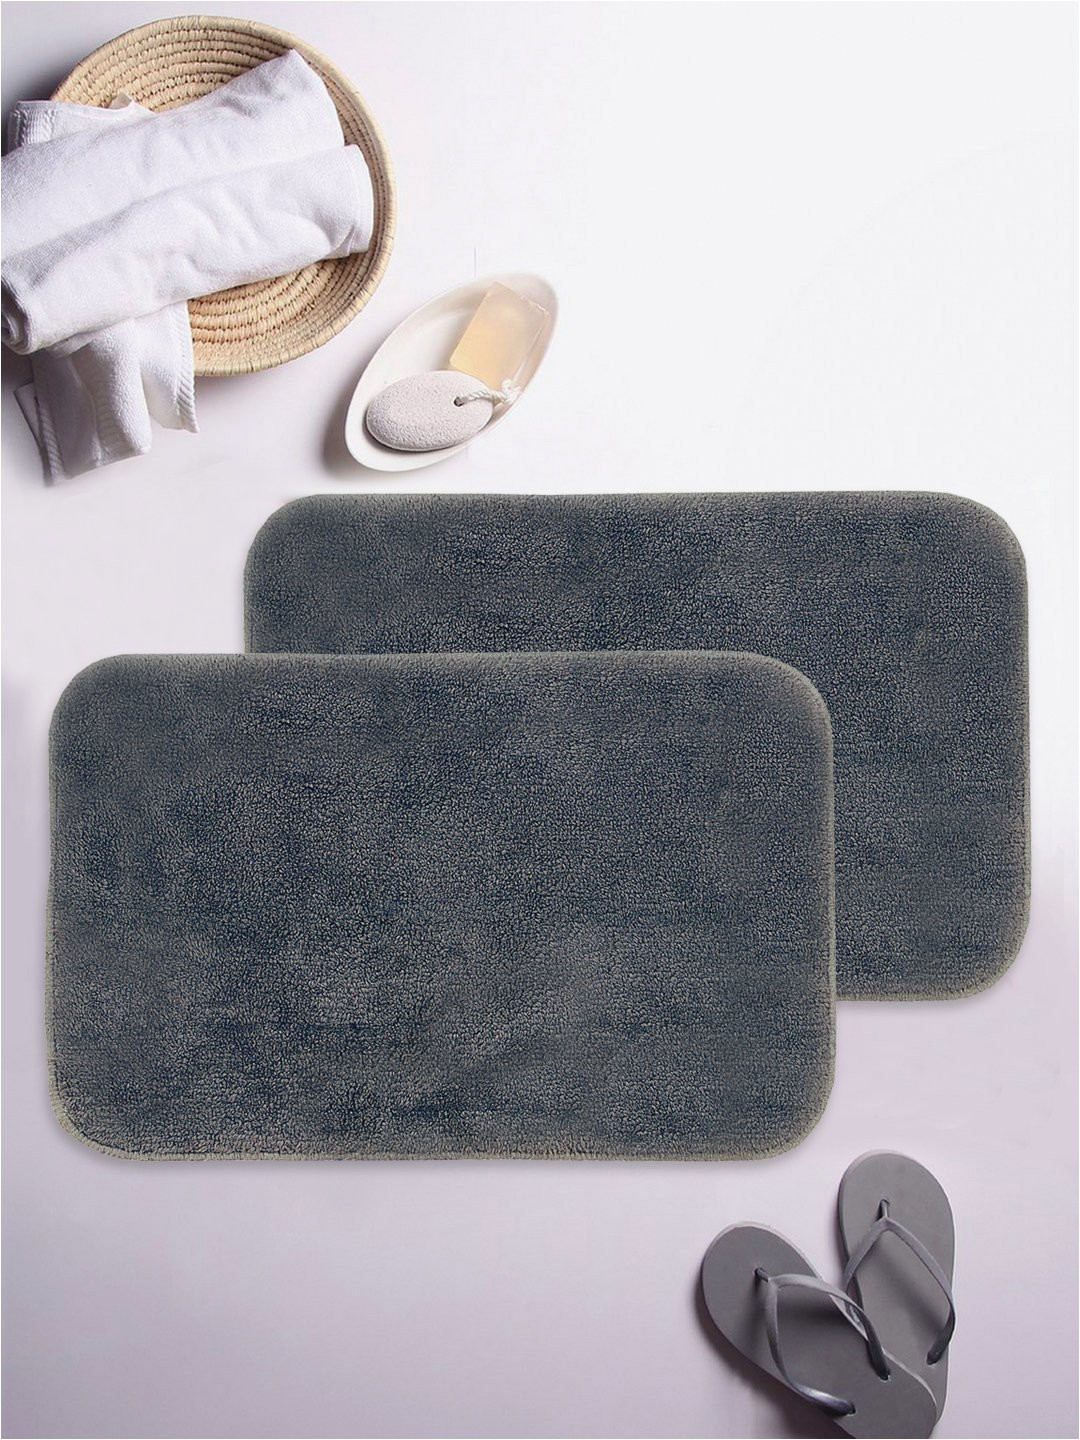 40 X 60 Bath Rug Bianca Cotton Anti Slip Bath Mat Set Of 2 60 X 40 Cm